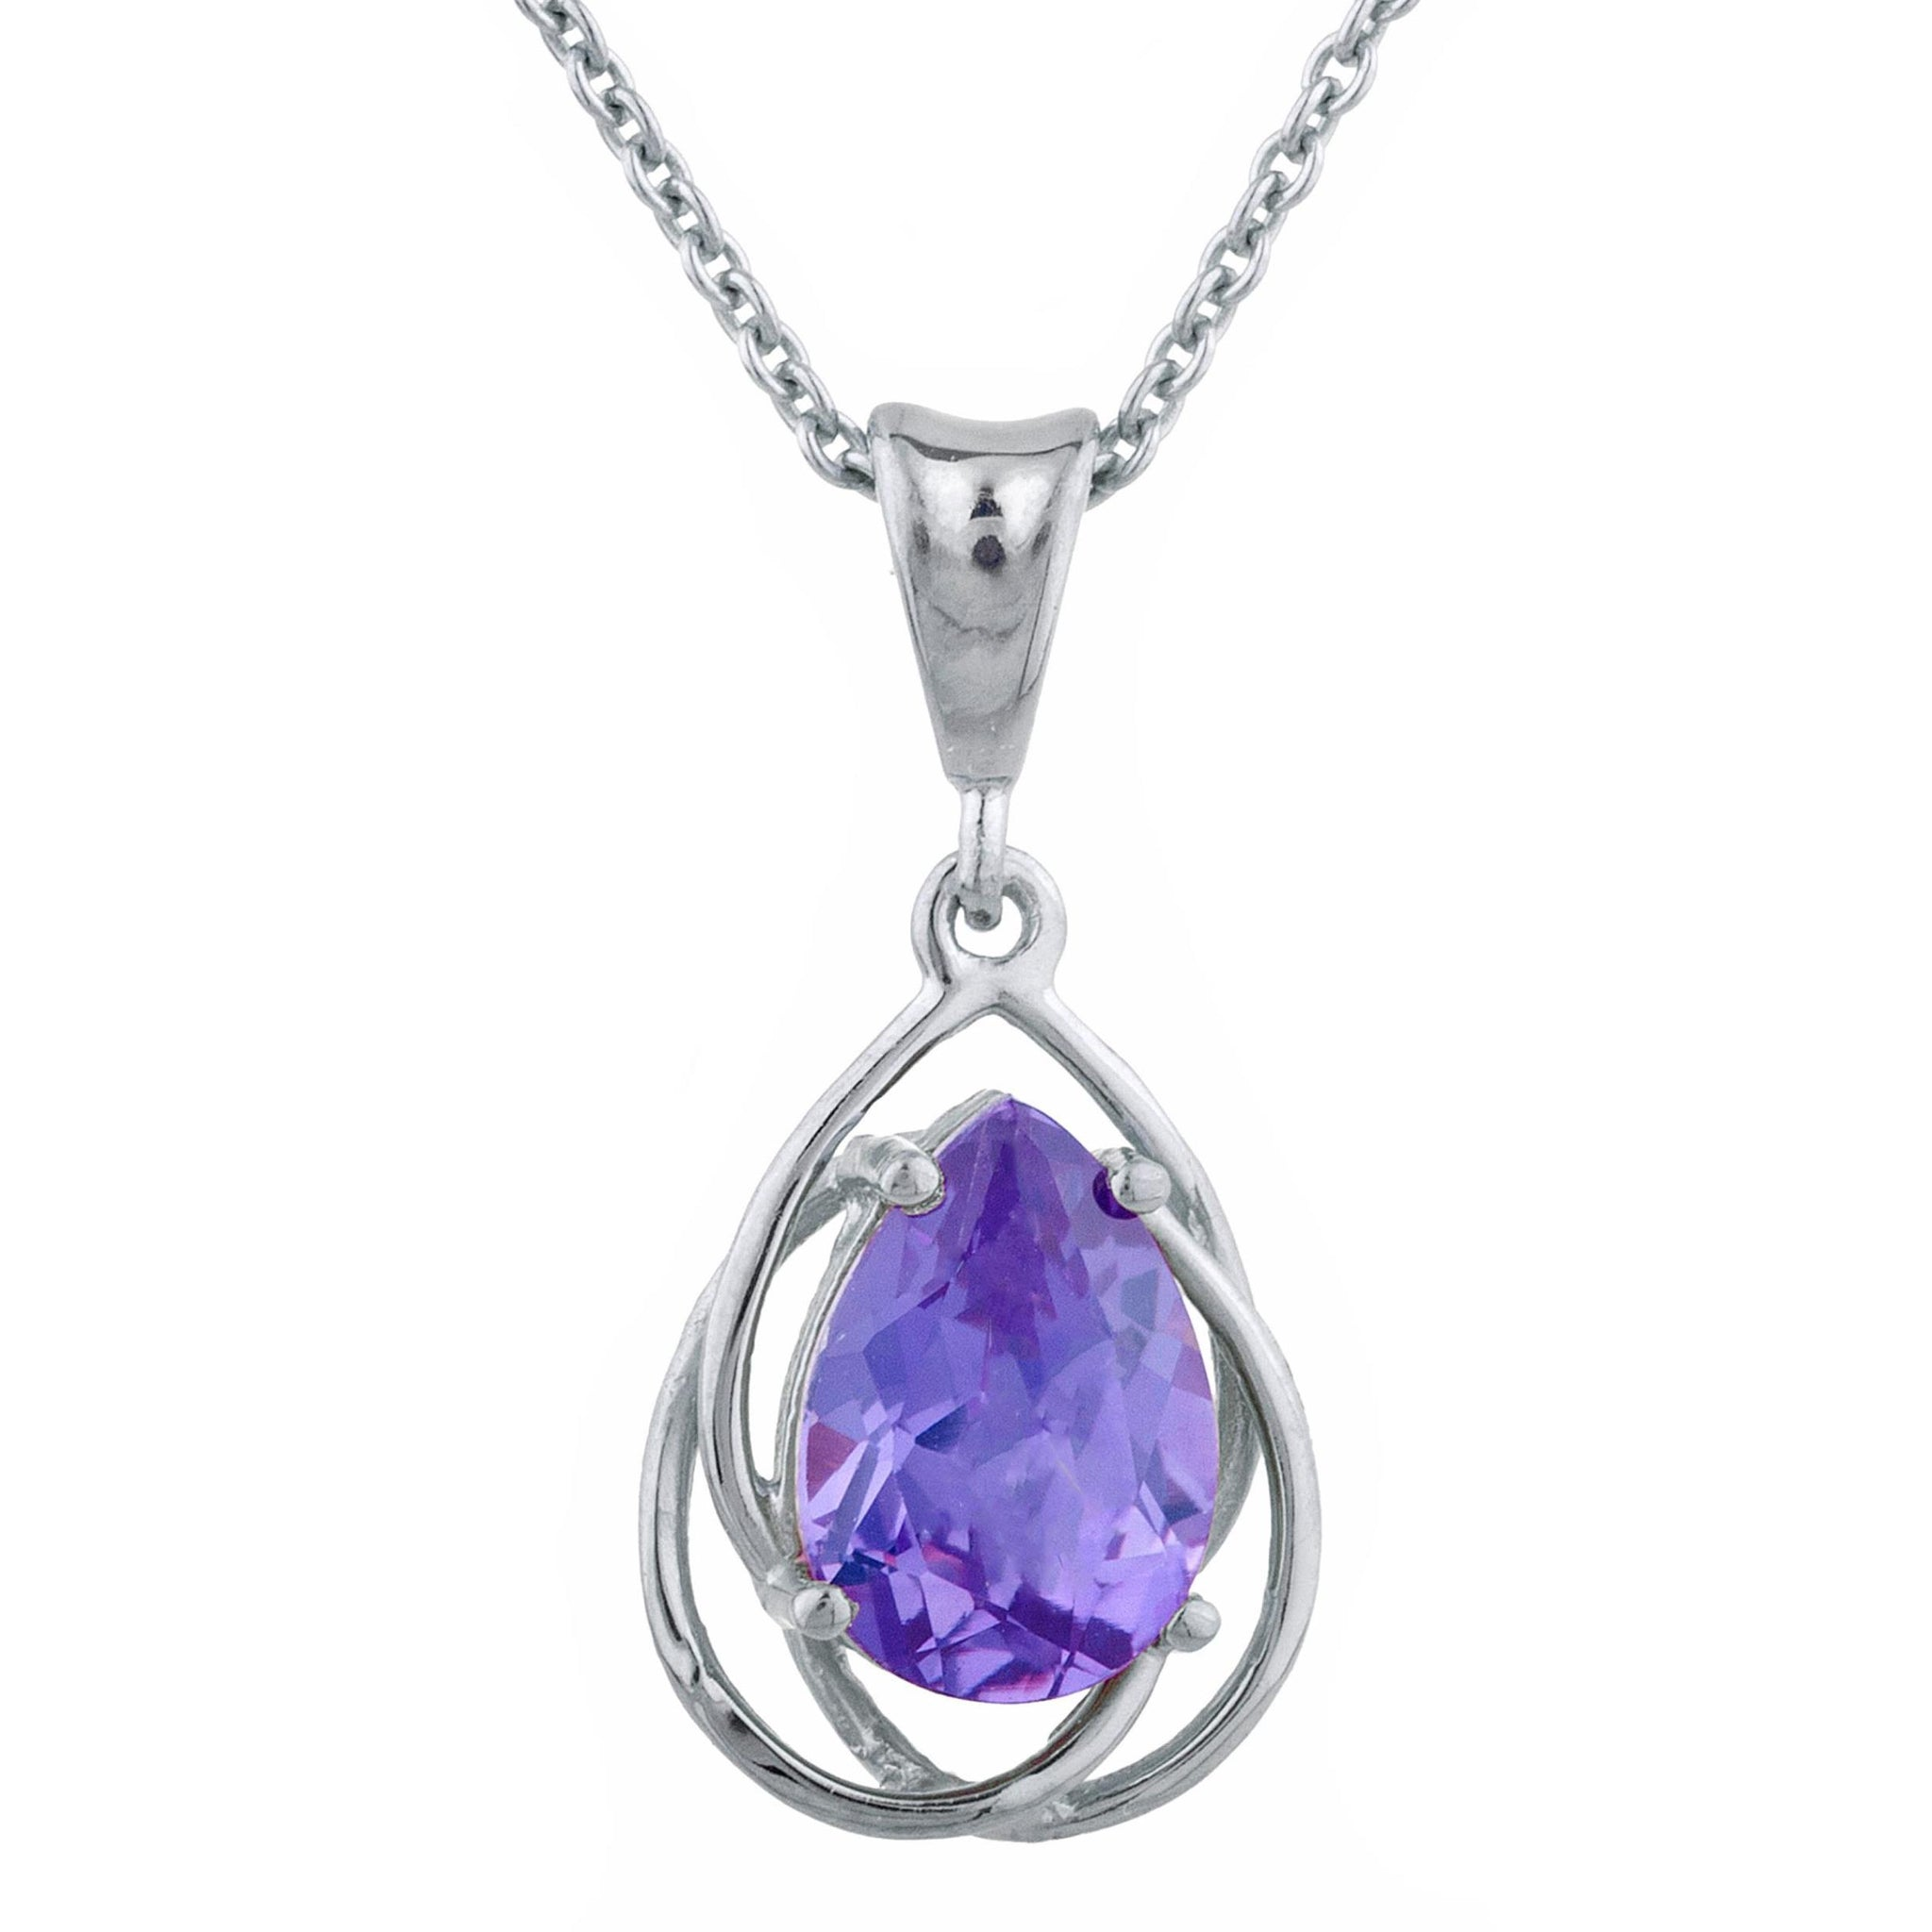 2 Ct Alexandrite Pear Teardrop Design Pendant .925 Sterling Silver